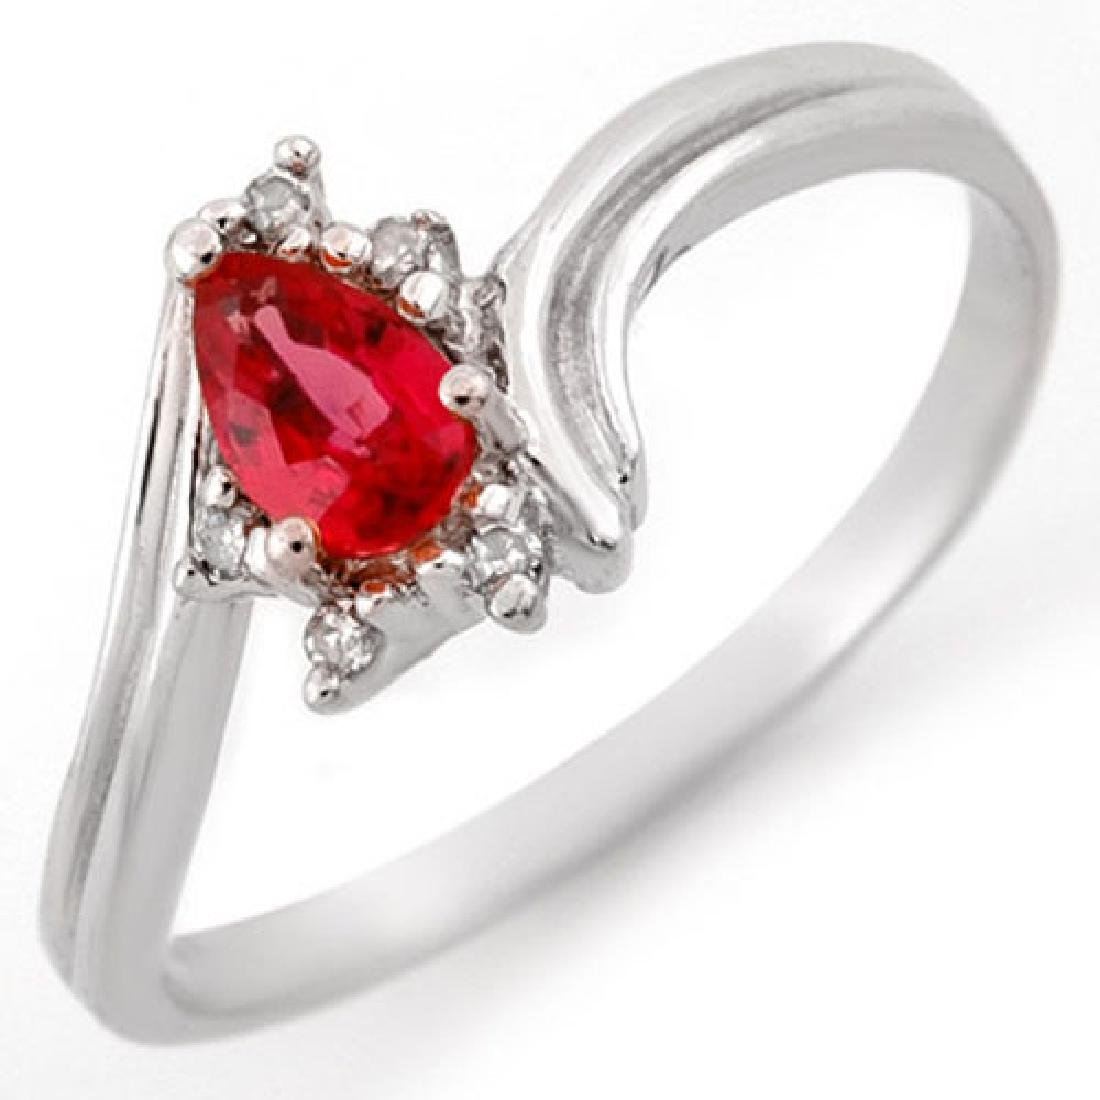 0.35 CTW Red Sapphire & Diamond Ring 14K White Gold